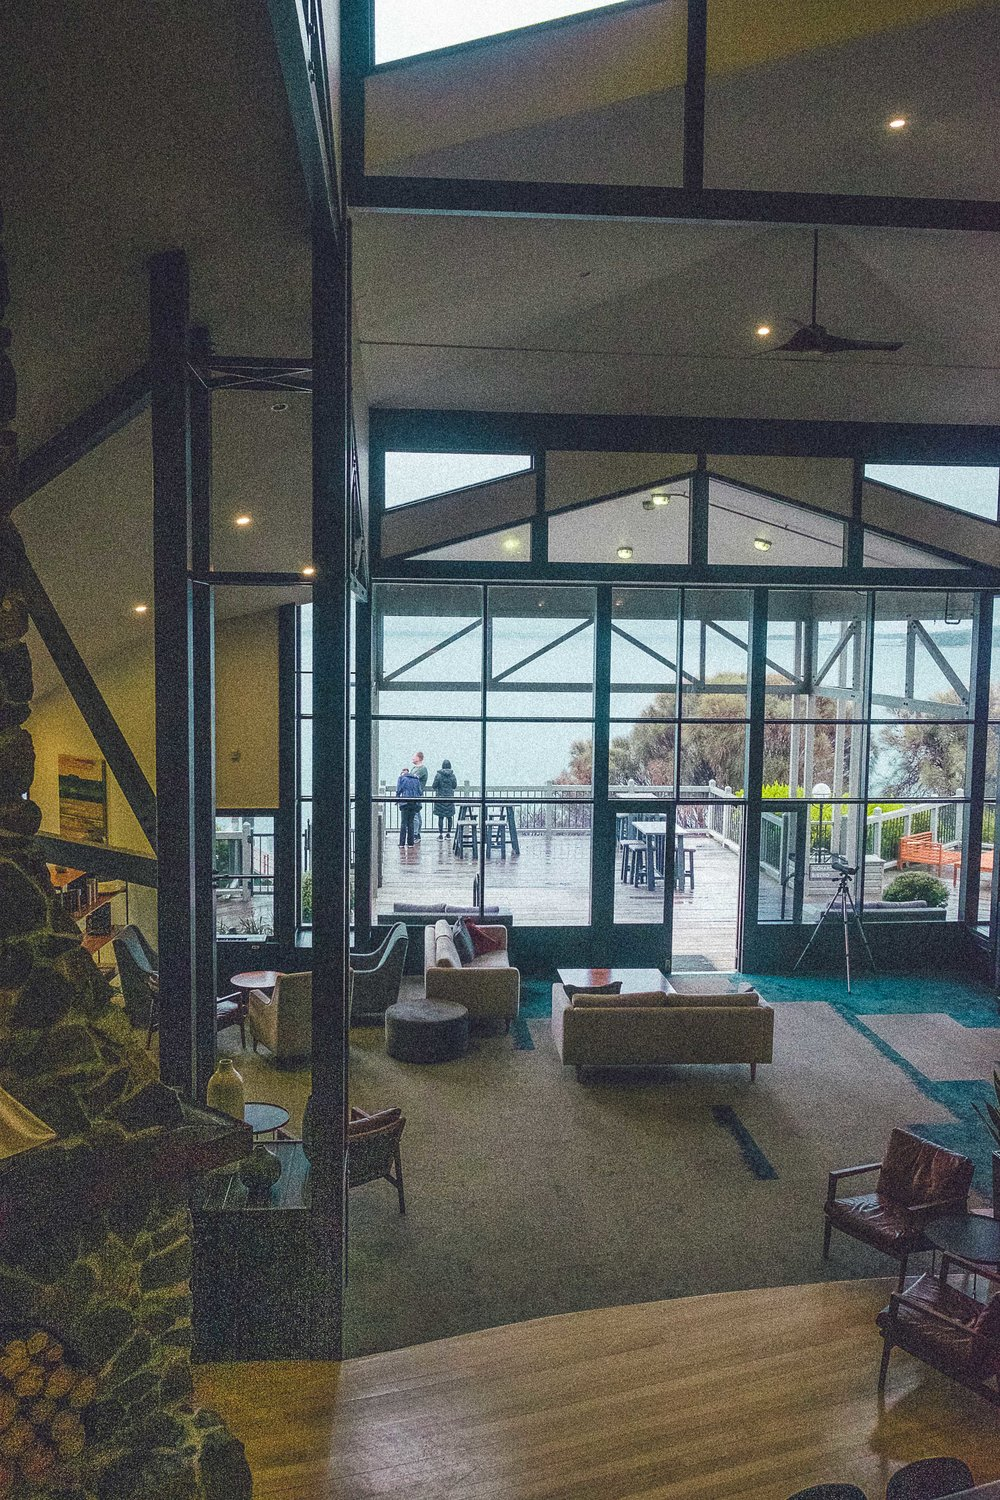 Rachel Off Duty: Tasmania Hotel Review - Freycinet Lodge